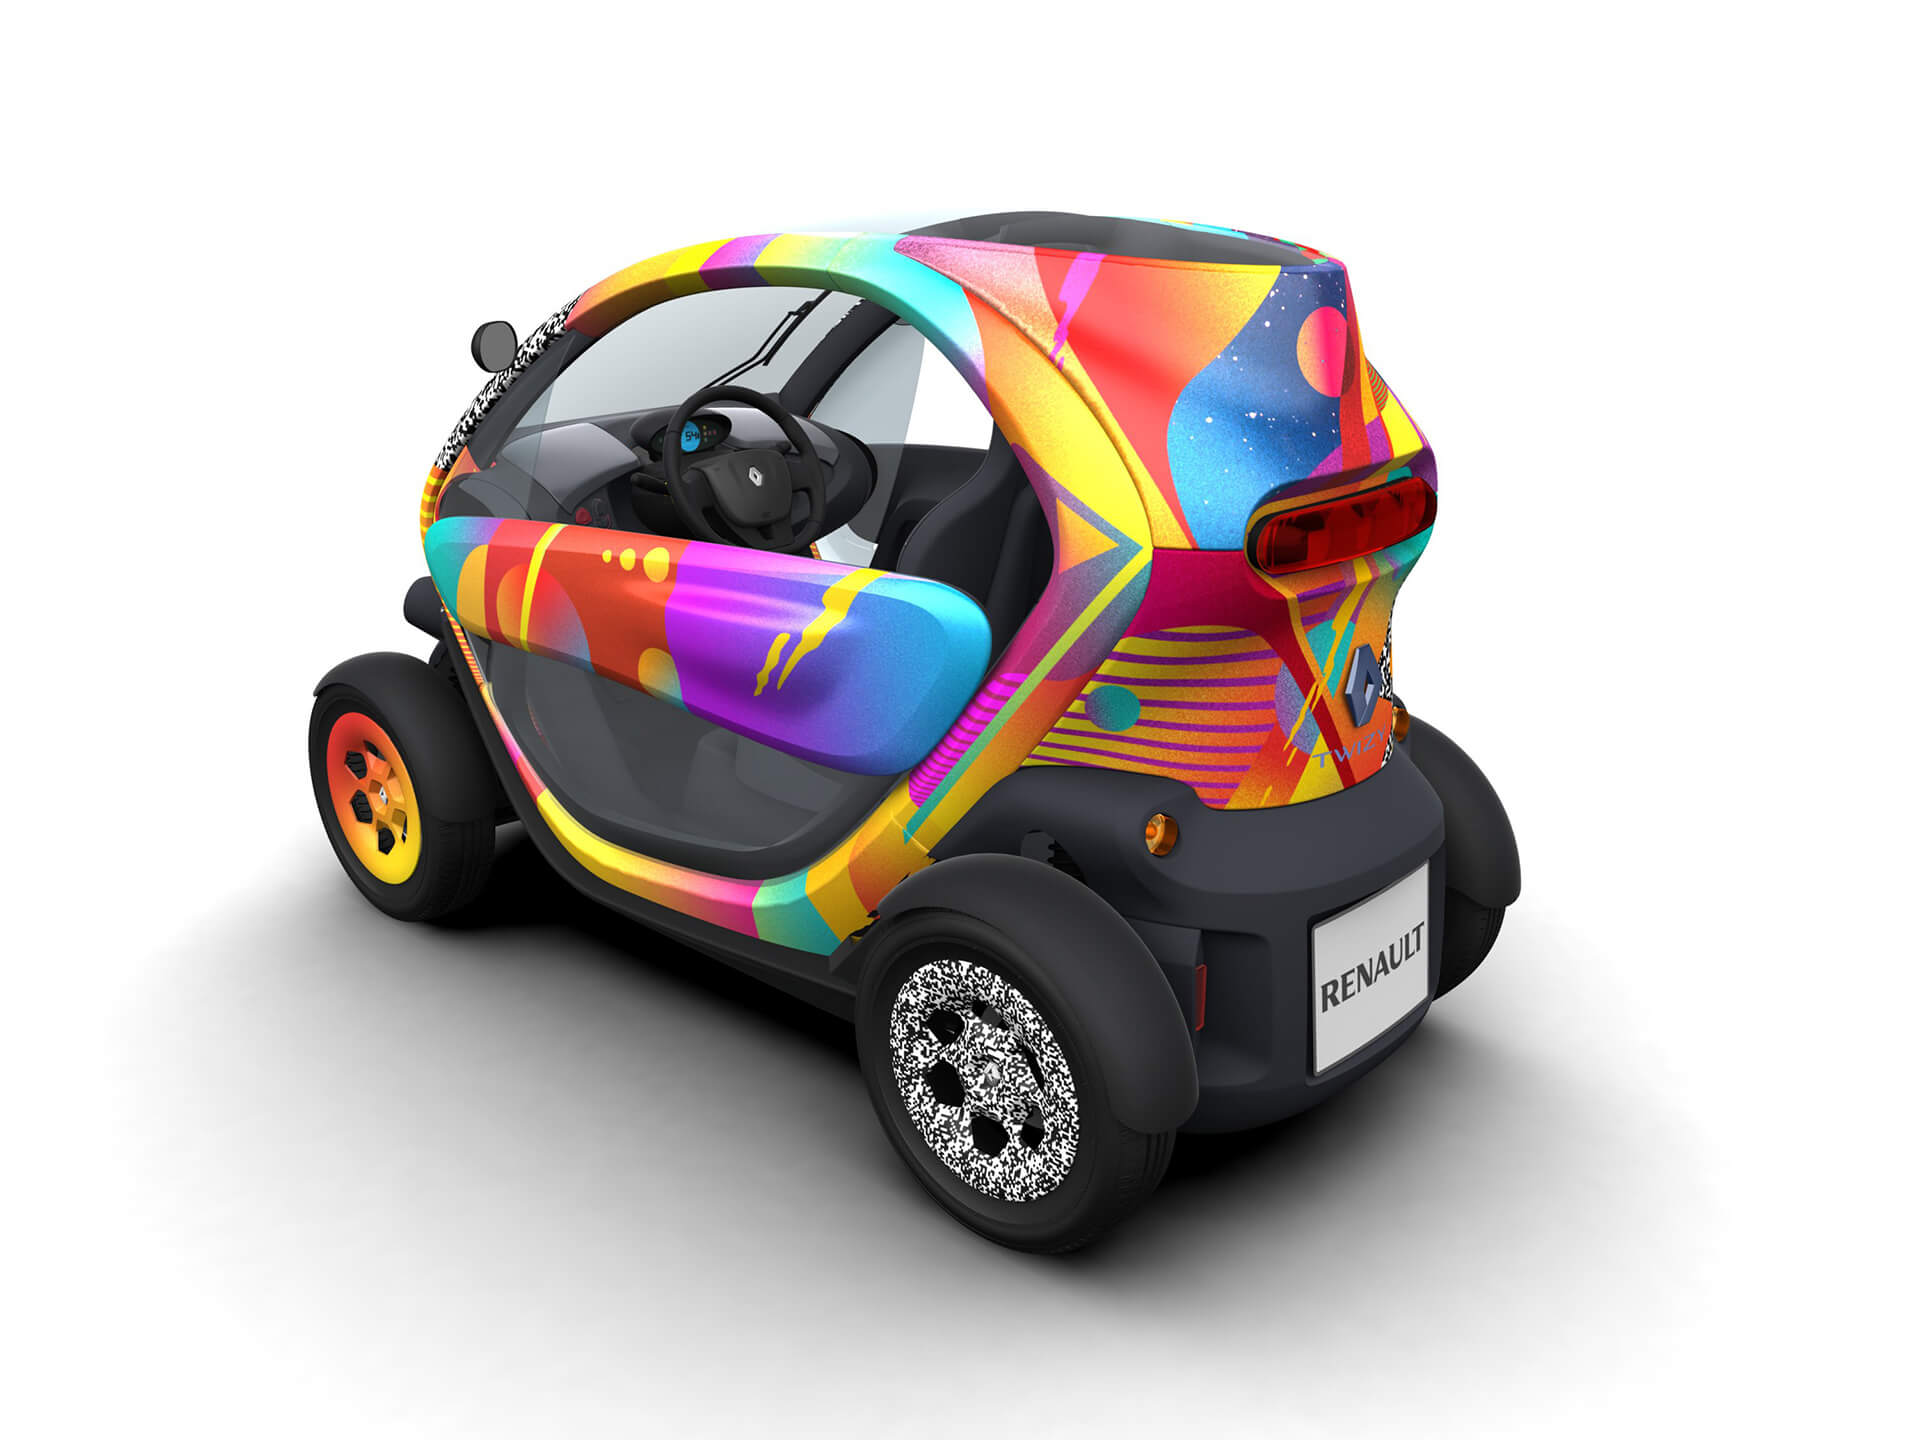 The Renault Twizy by La Boca | Agent Pekka